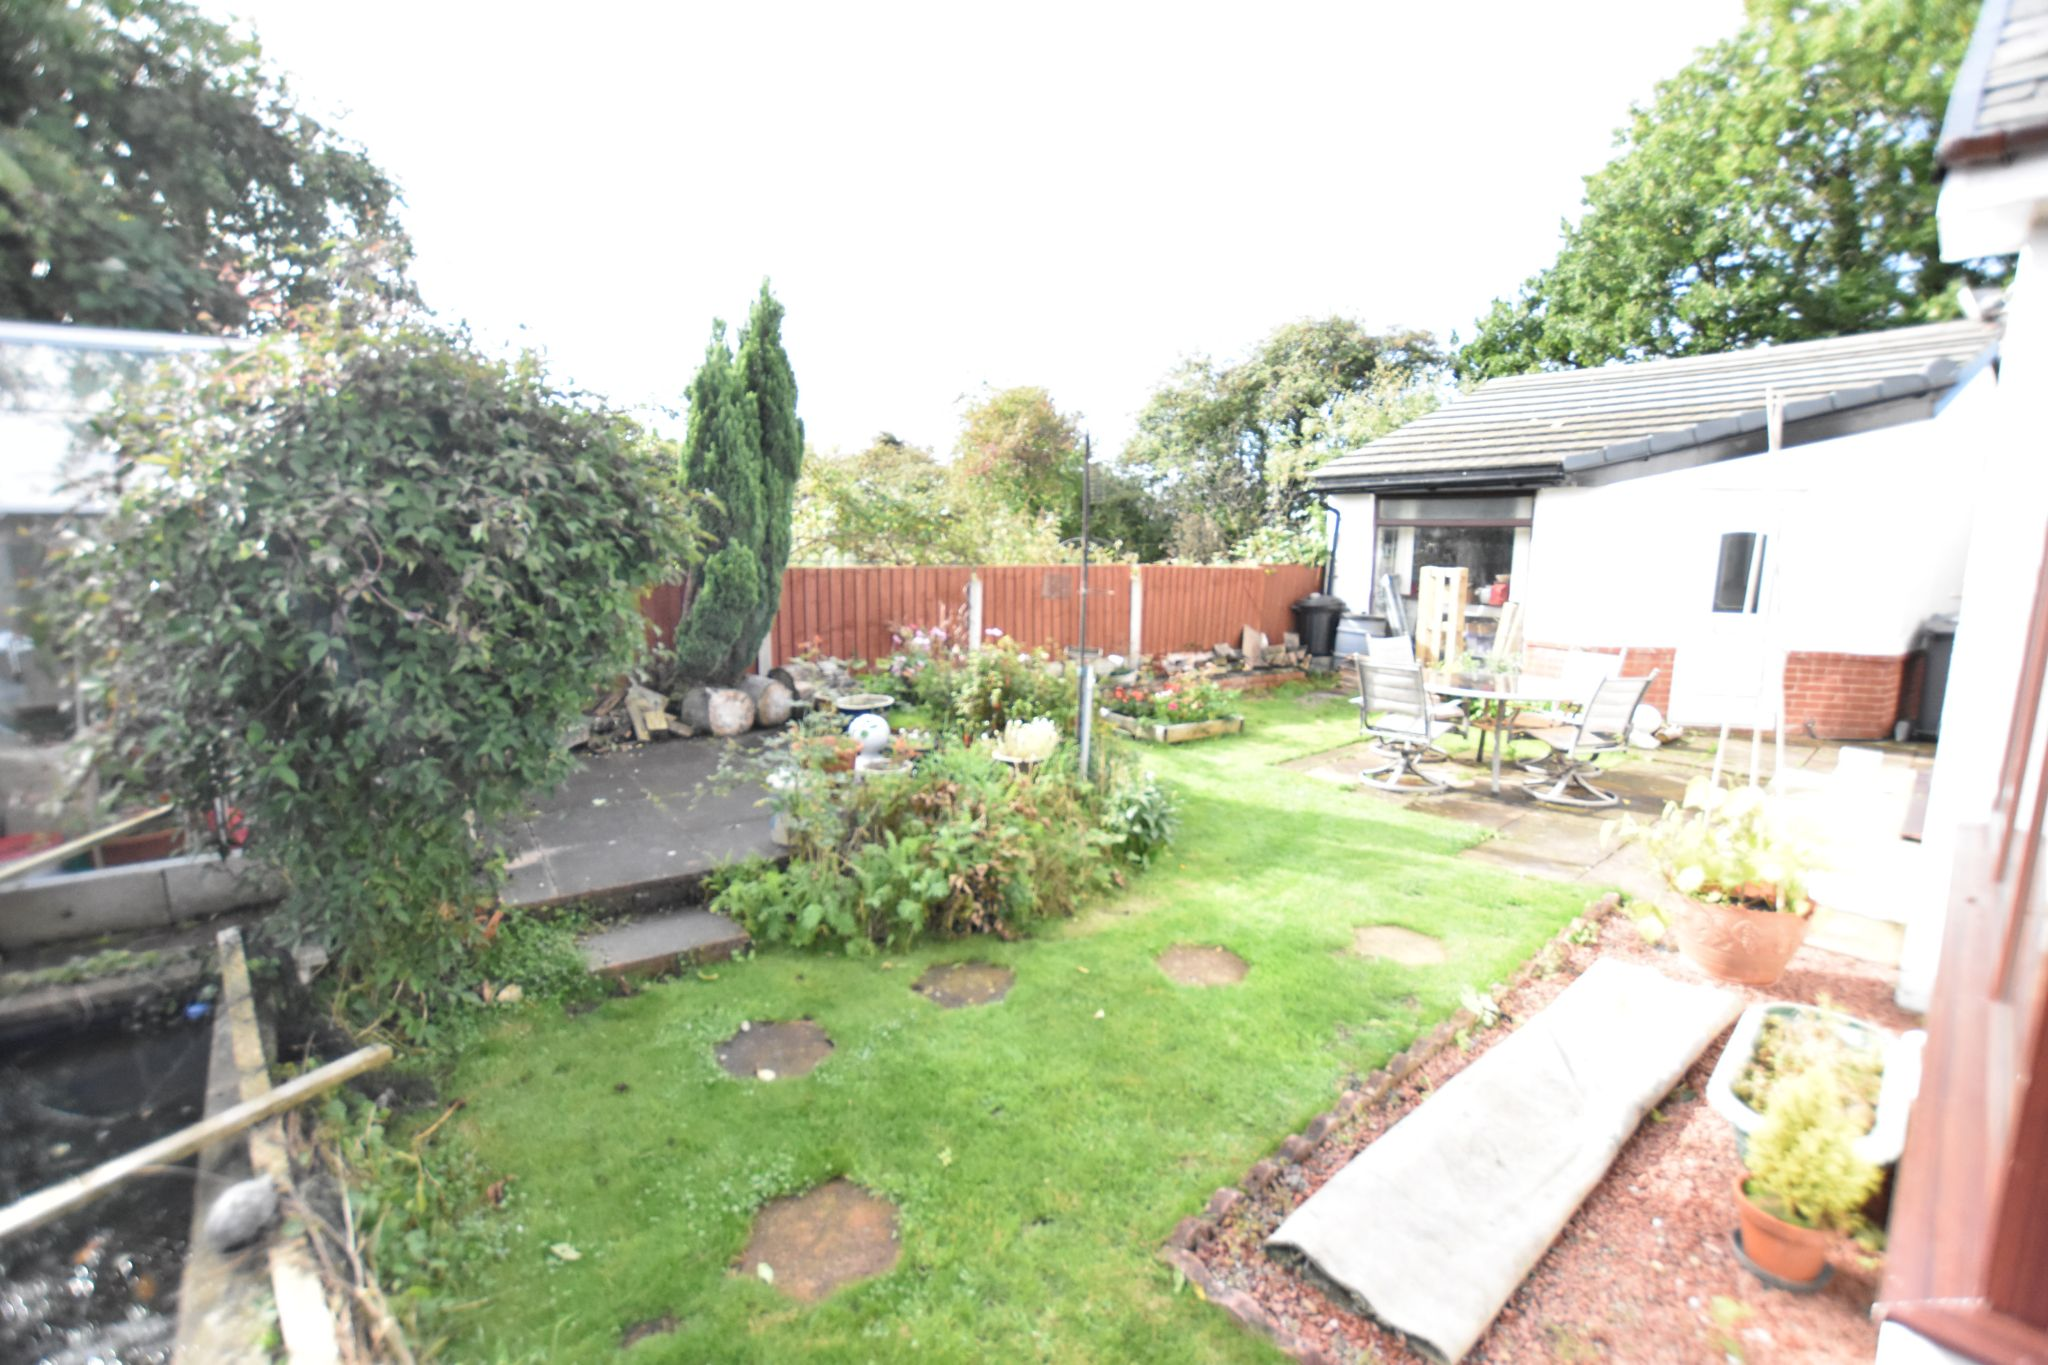 Image 4 of 4 of GARDEN, on Accommodation Comprising for